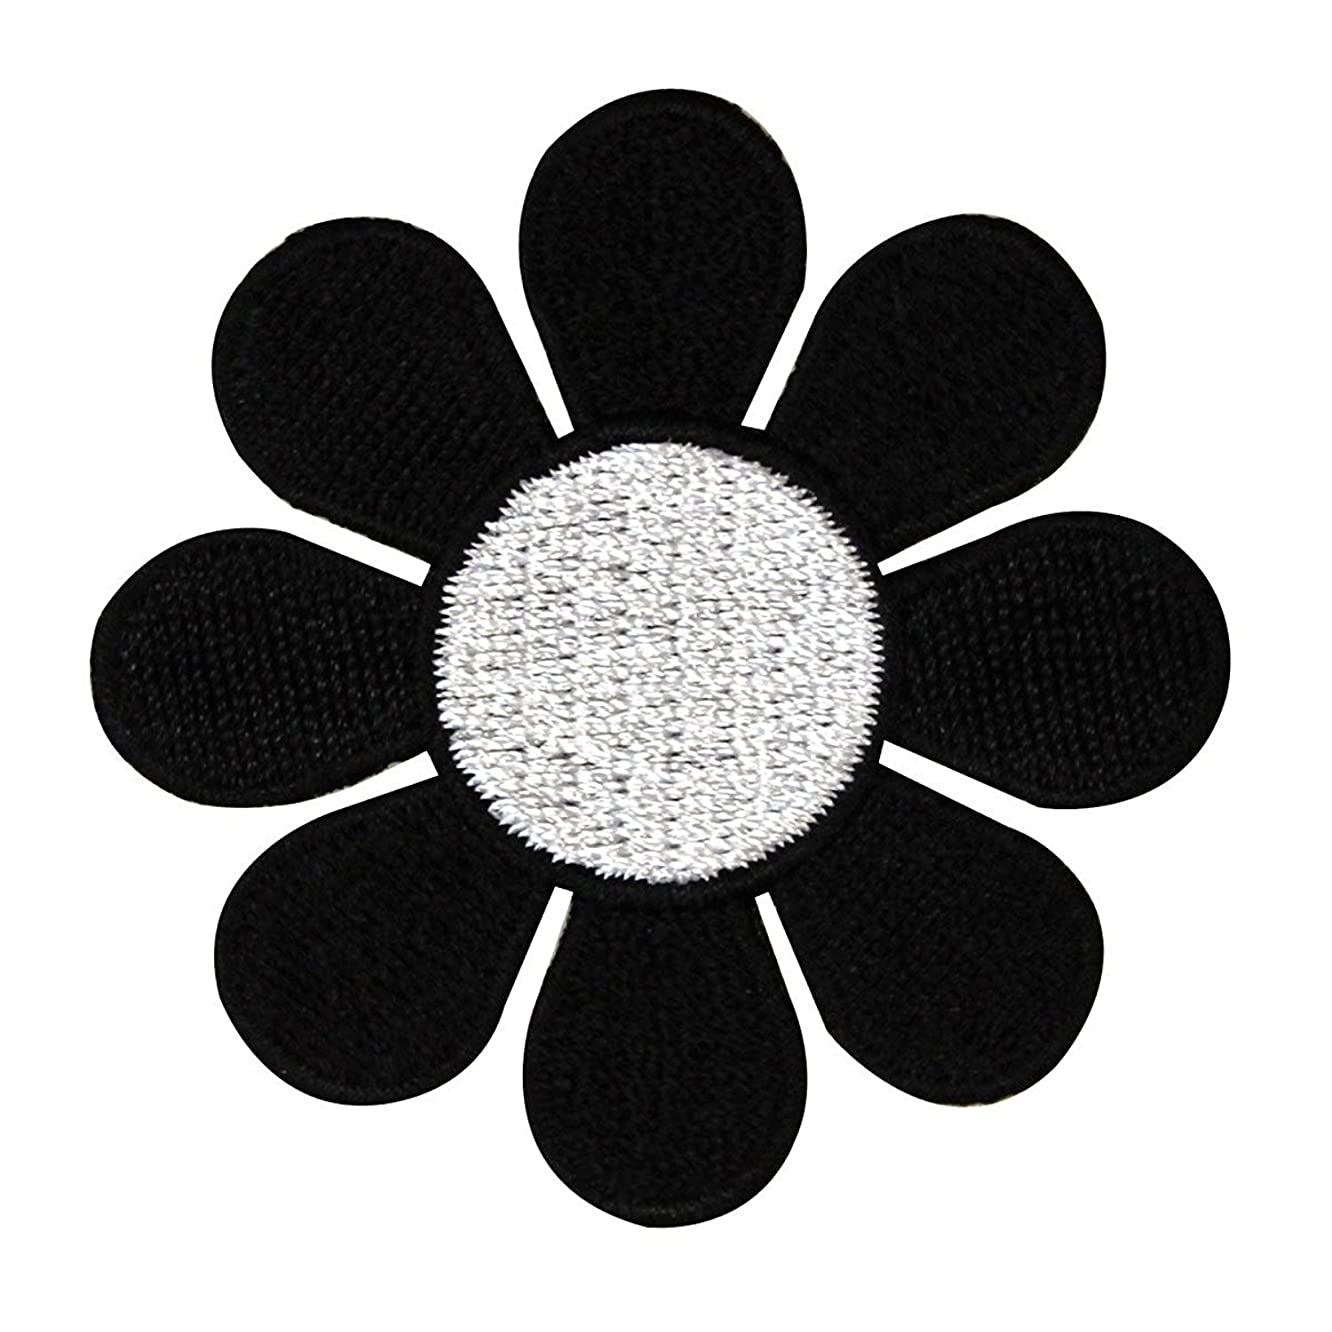 2 INCH Daisy Hippie Flower Embroidered Iron on Applique Patch FD - Black with White Center